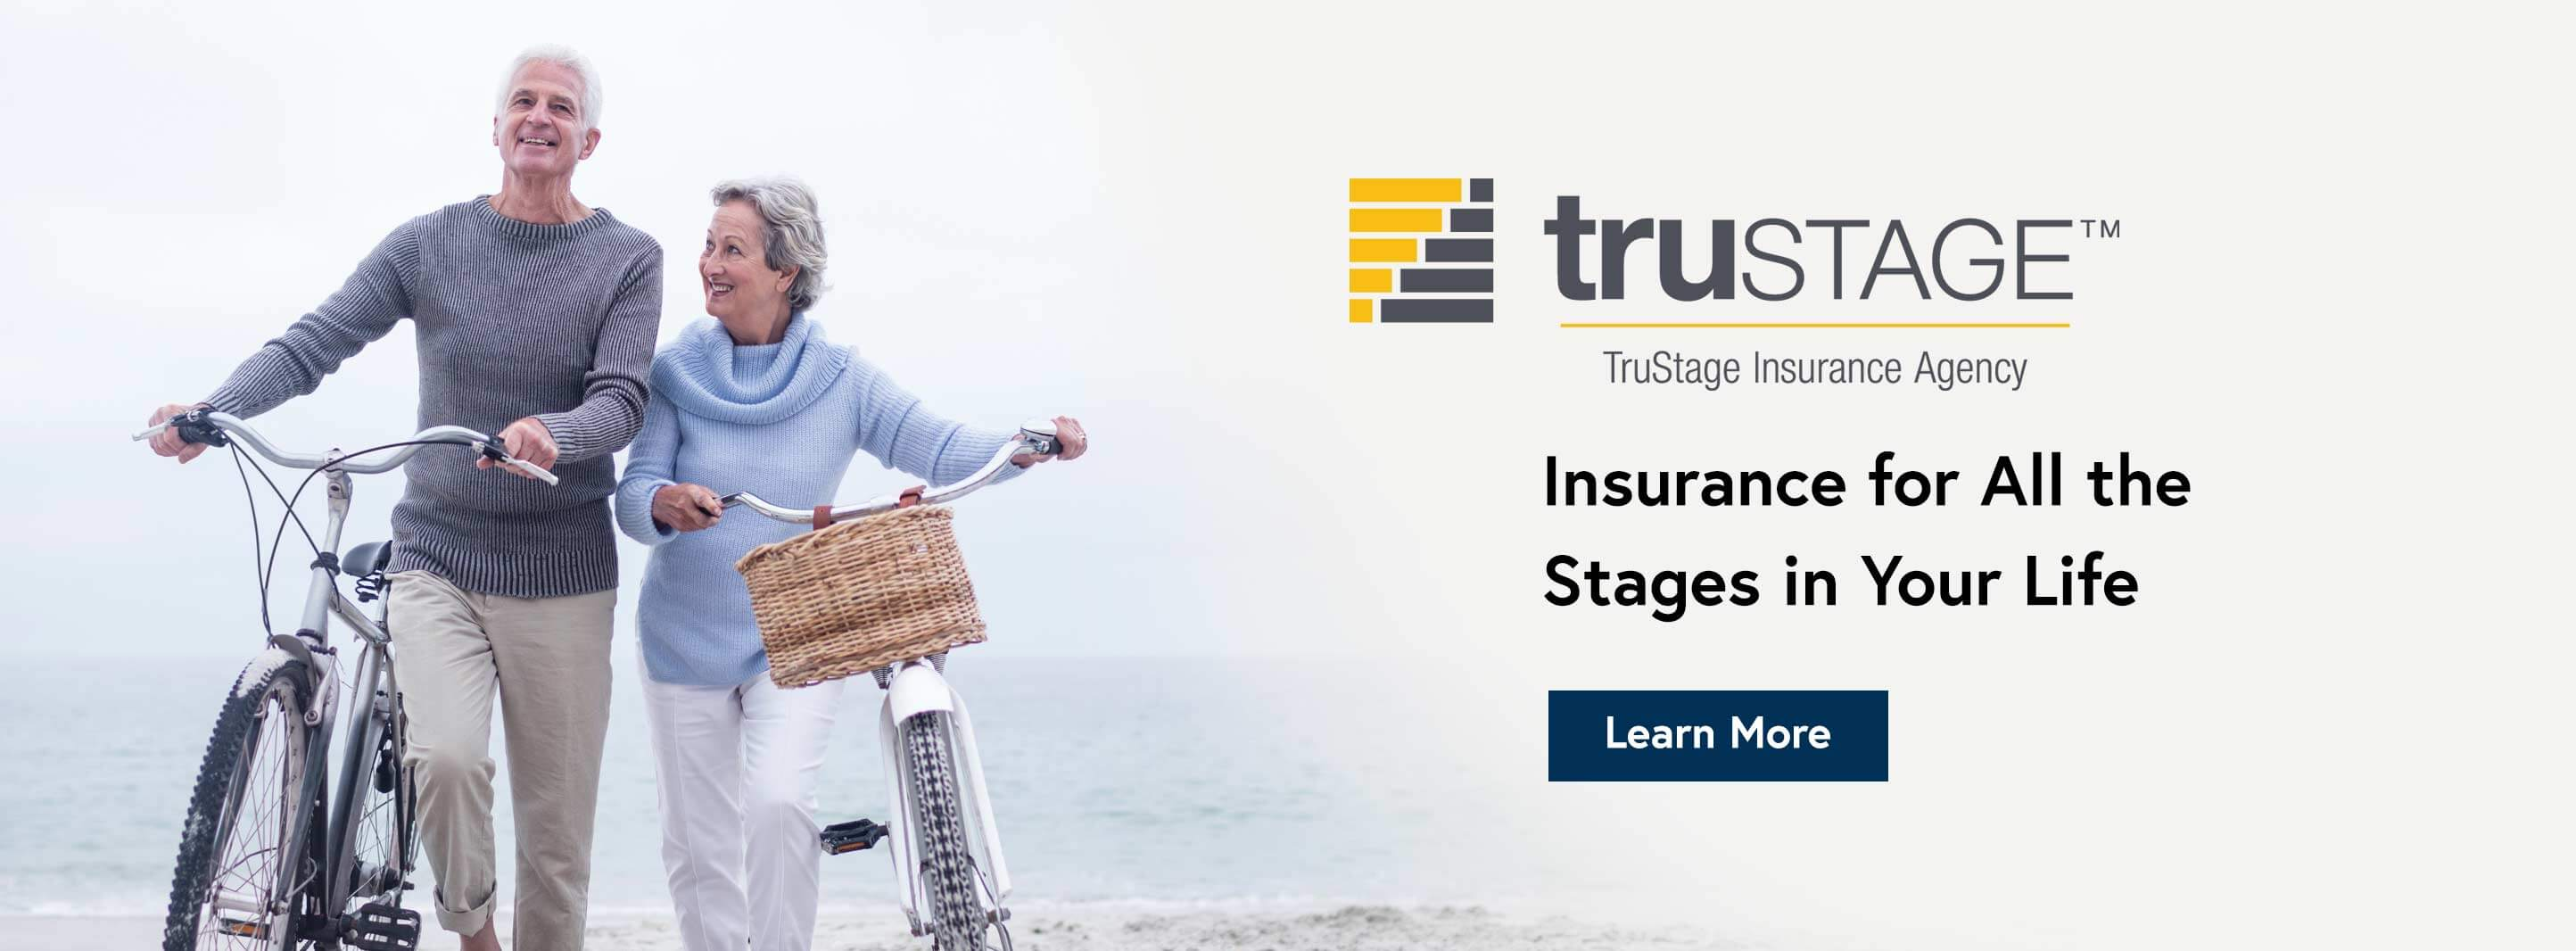 Insurance for all the stages in your life.